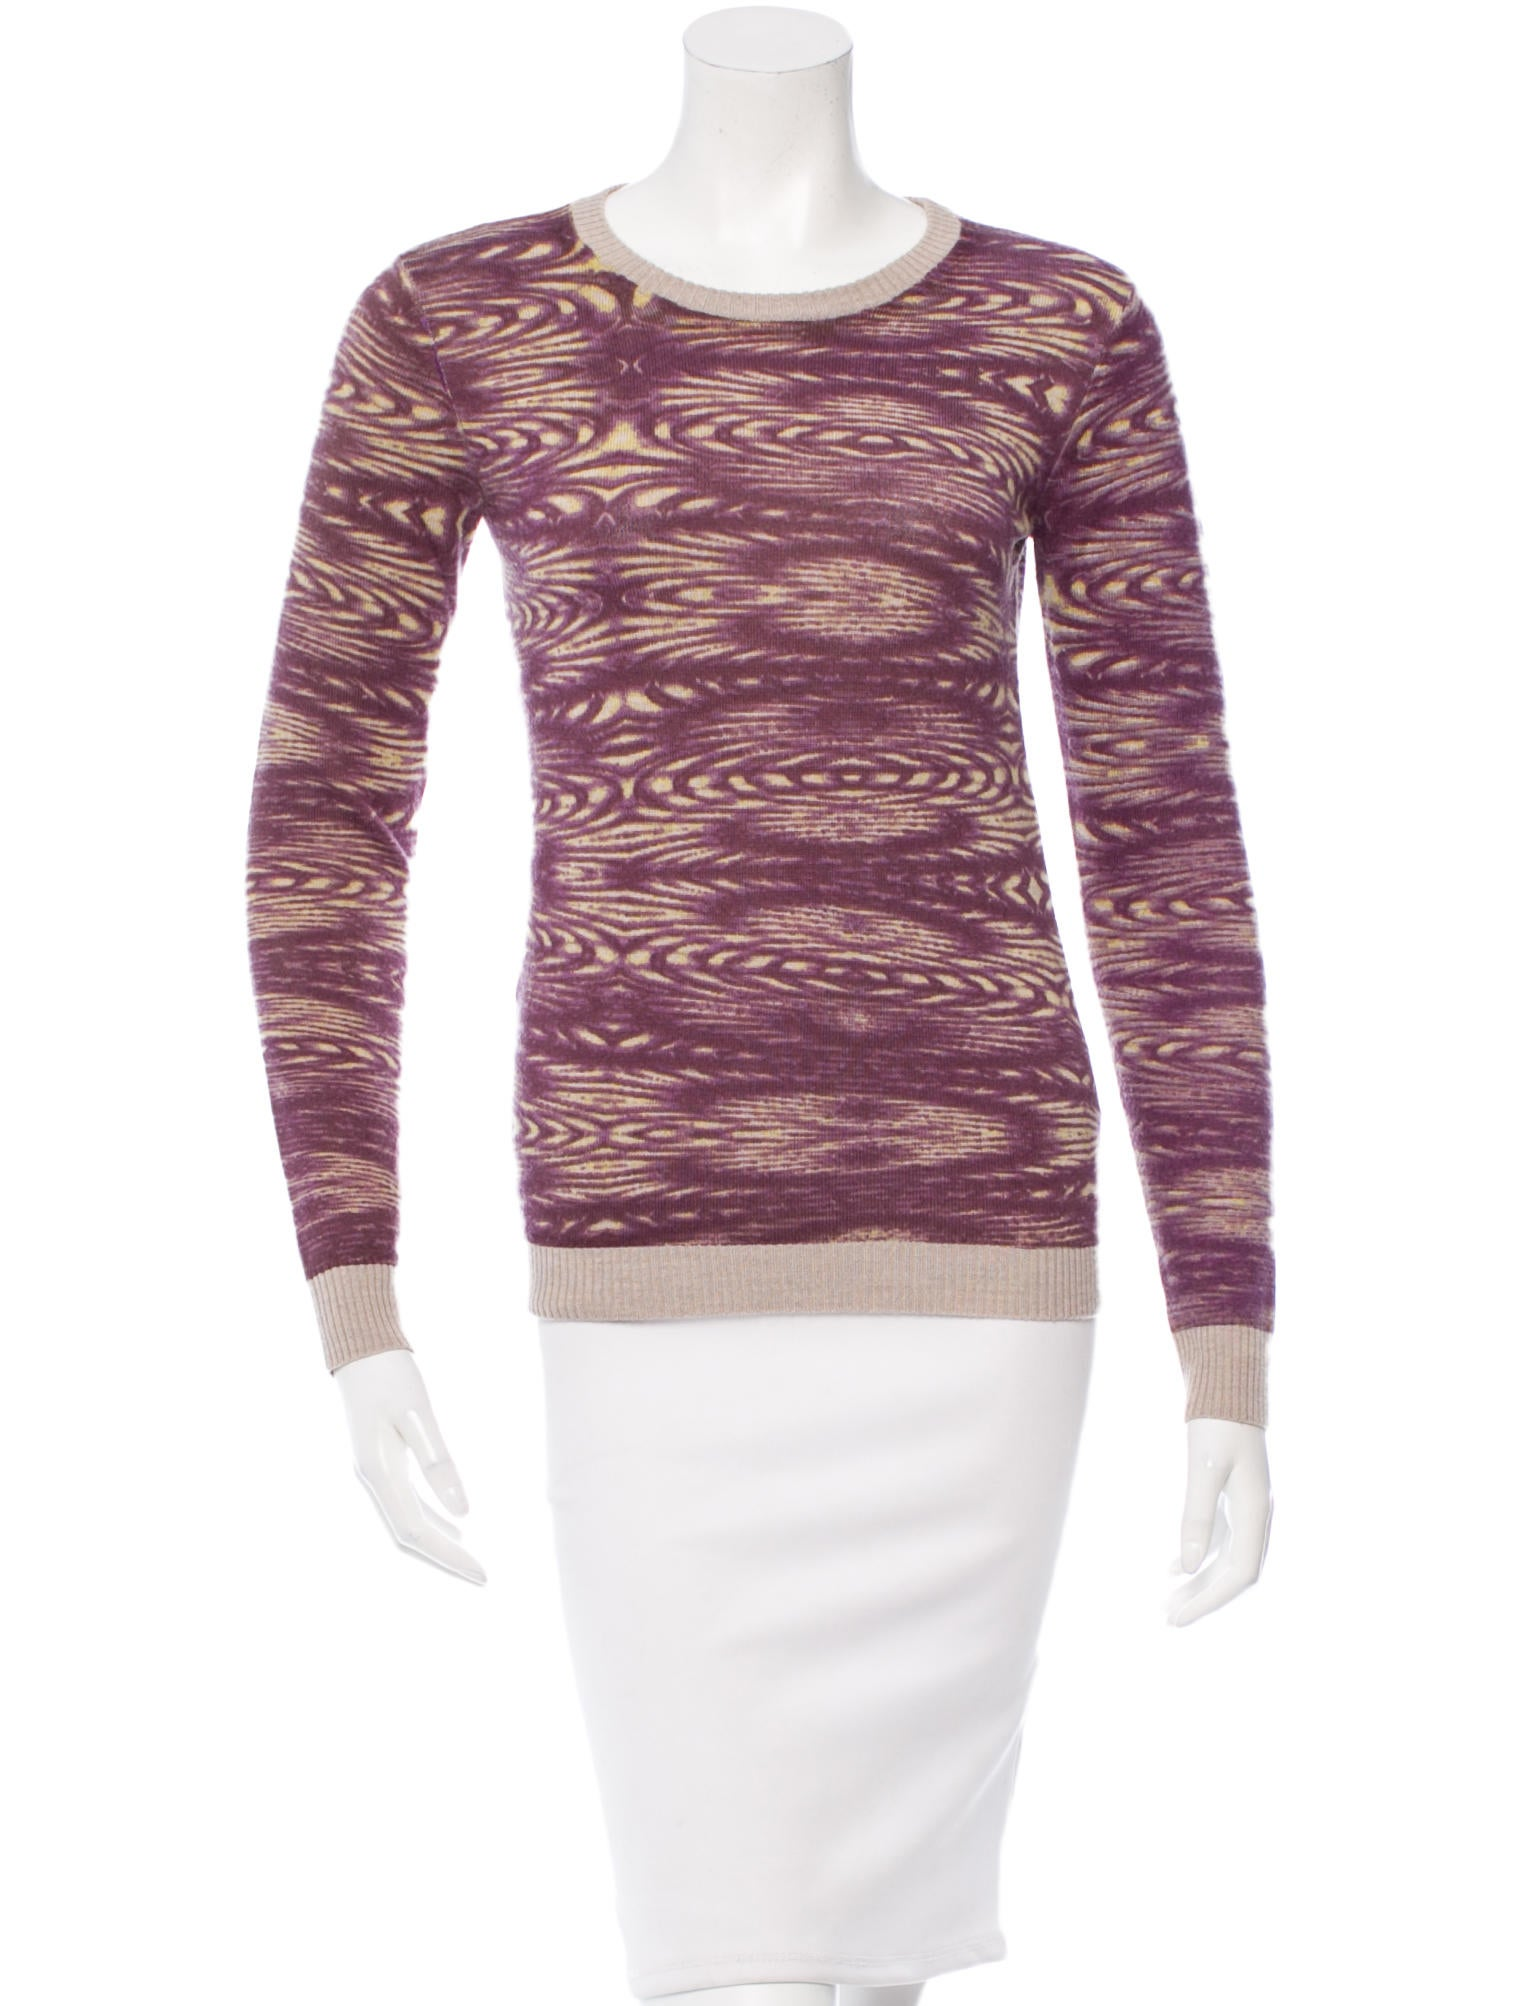 This cozy merino wool sweater/sweatshirt hybrid features a jacquard knit leopard pattern (meaning it's woven right into the design). It's a total upgrade to your favorite everyday pullover.